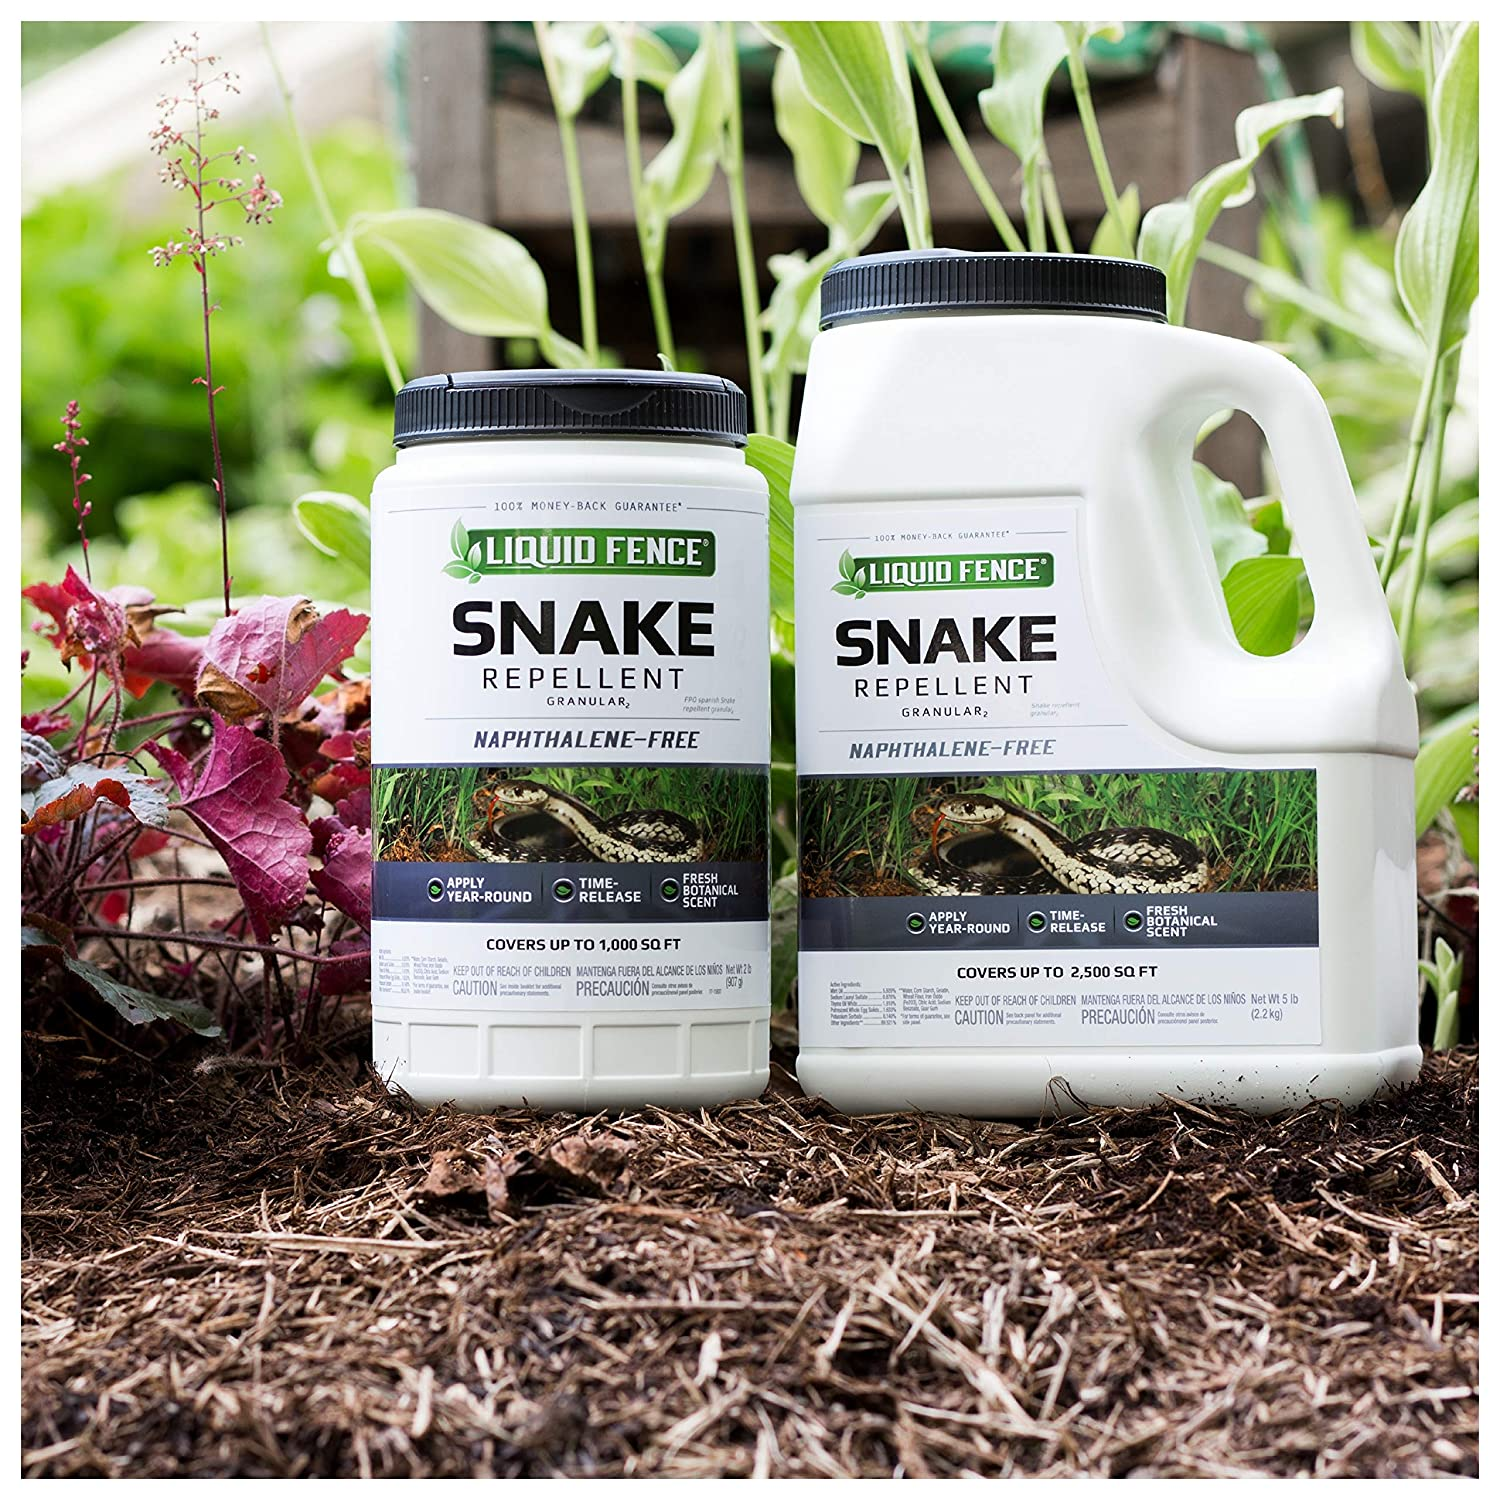 Amazon.com : Liquid Fence Snake Repellent Granular, 2-Pound, 6-Pack : Garden & Outdoor